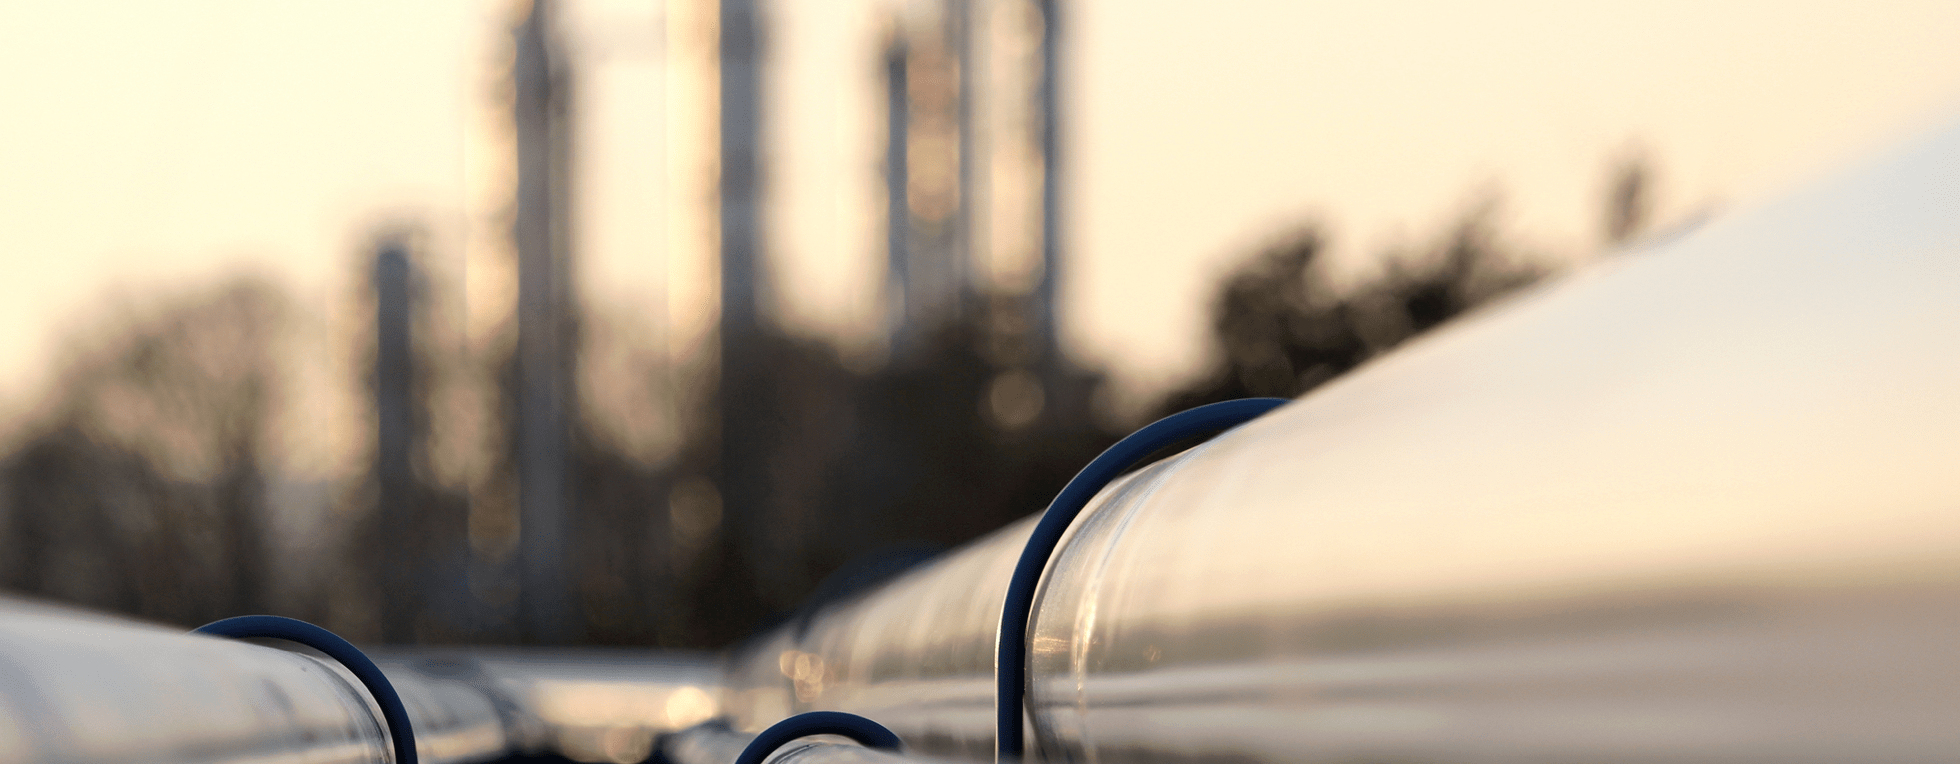 Tallgrass Energy's Industry First